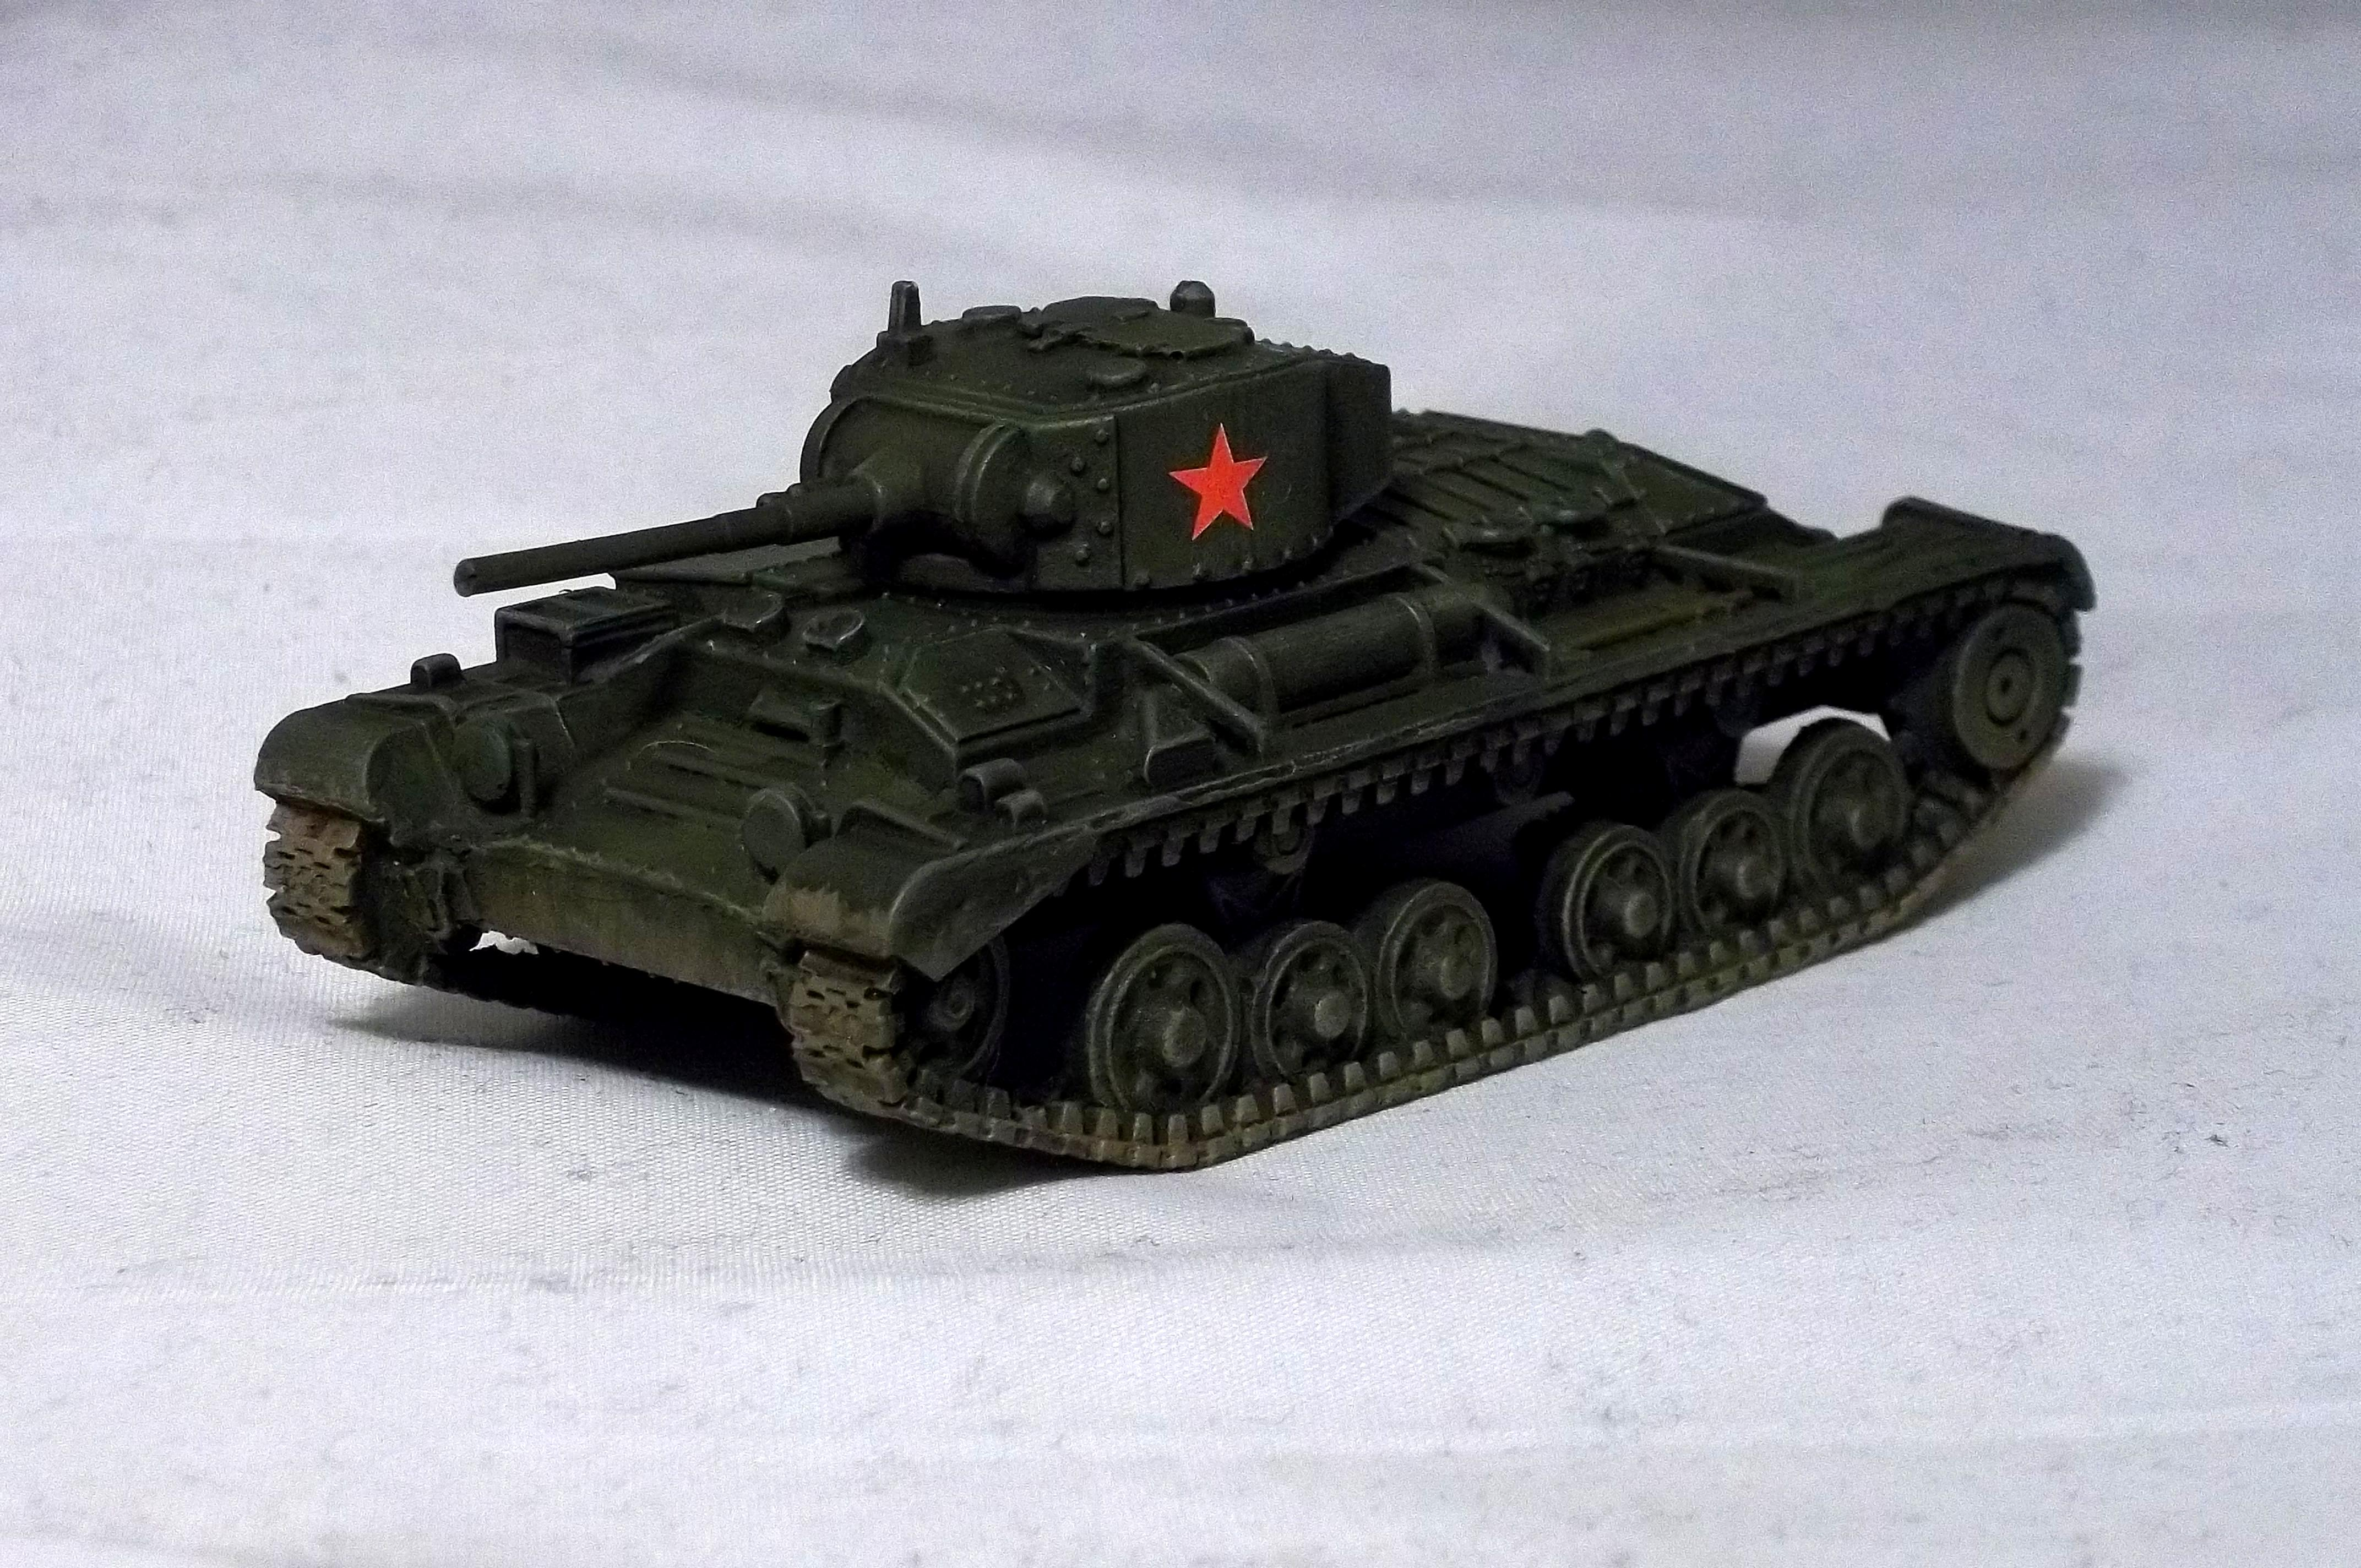 Blitzkrieg Miniatures, Bolt Action, Lend-lease, Soviet, Tank, Valentine Mk Ii, World War 2